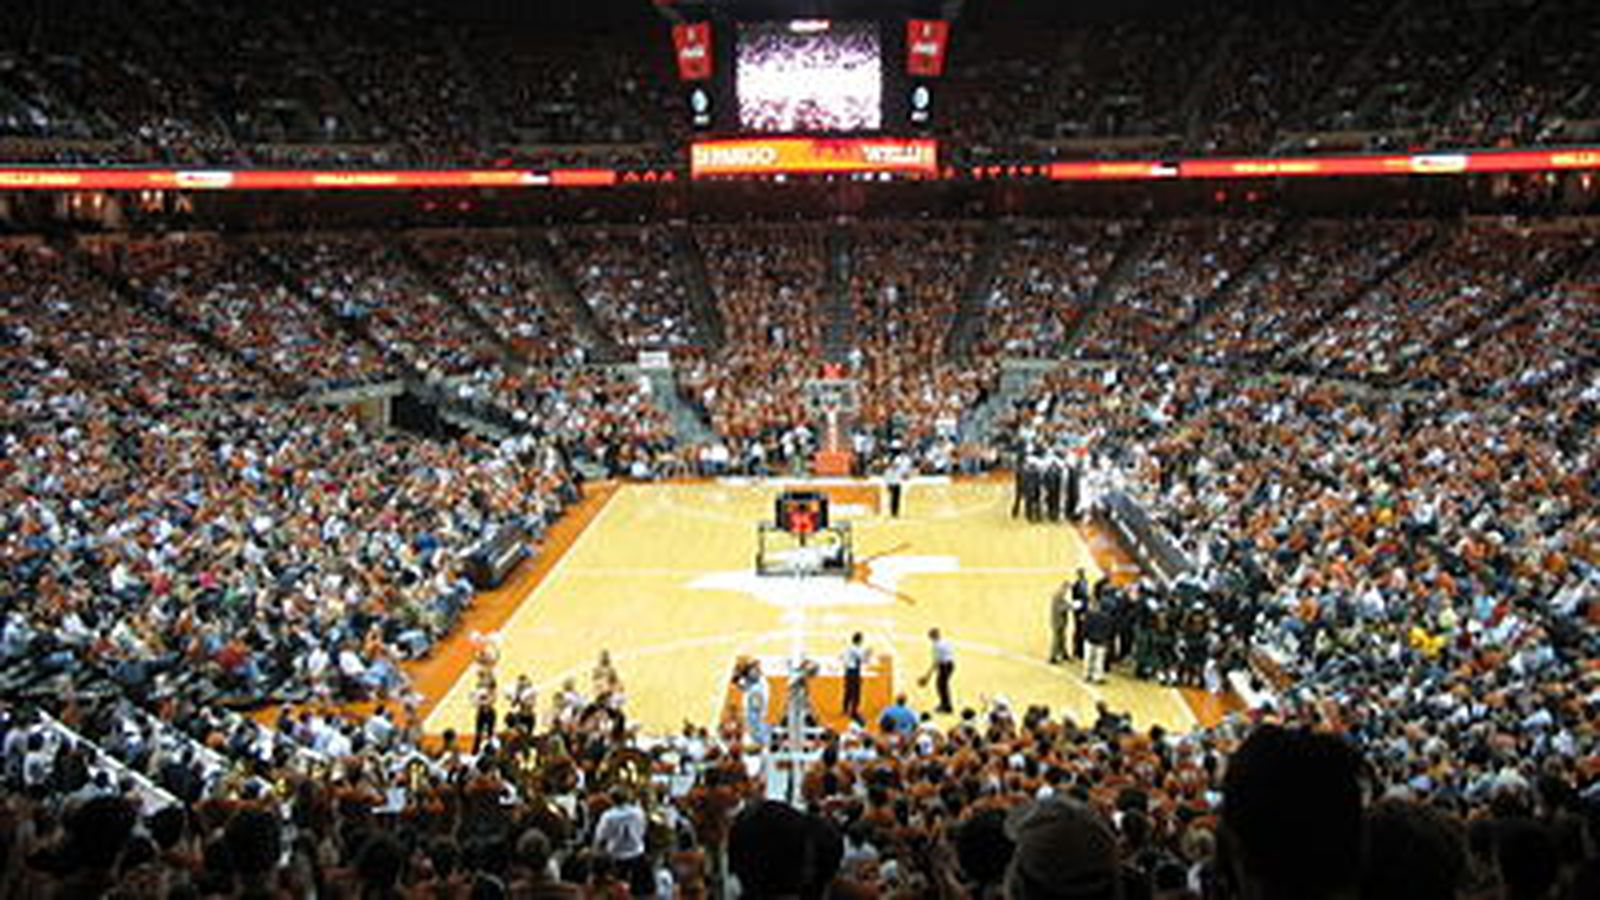 400px-frank_erwin_center_basketball.0